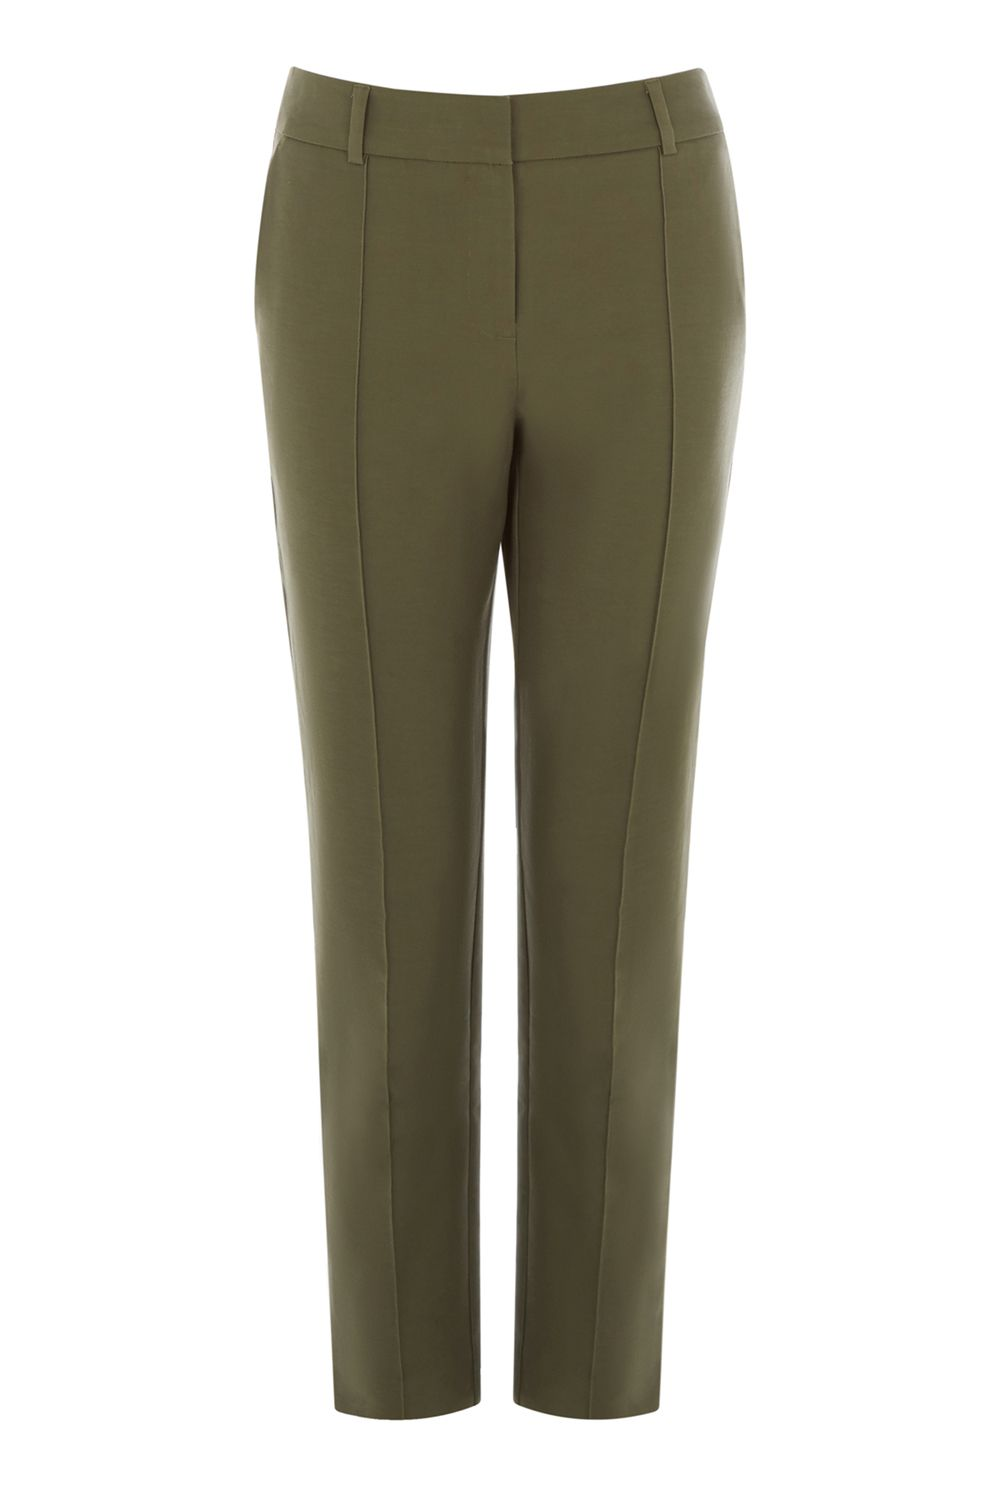 Warehouse Compact Cotton Trouser, Khaki